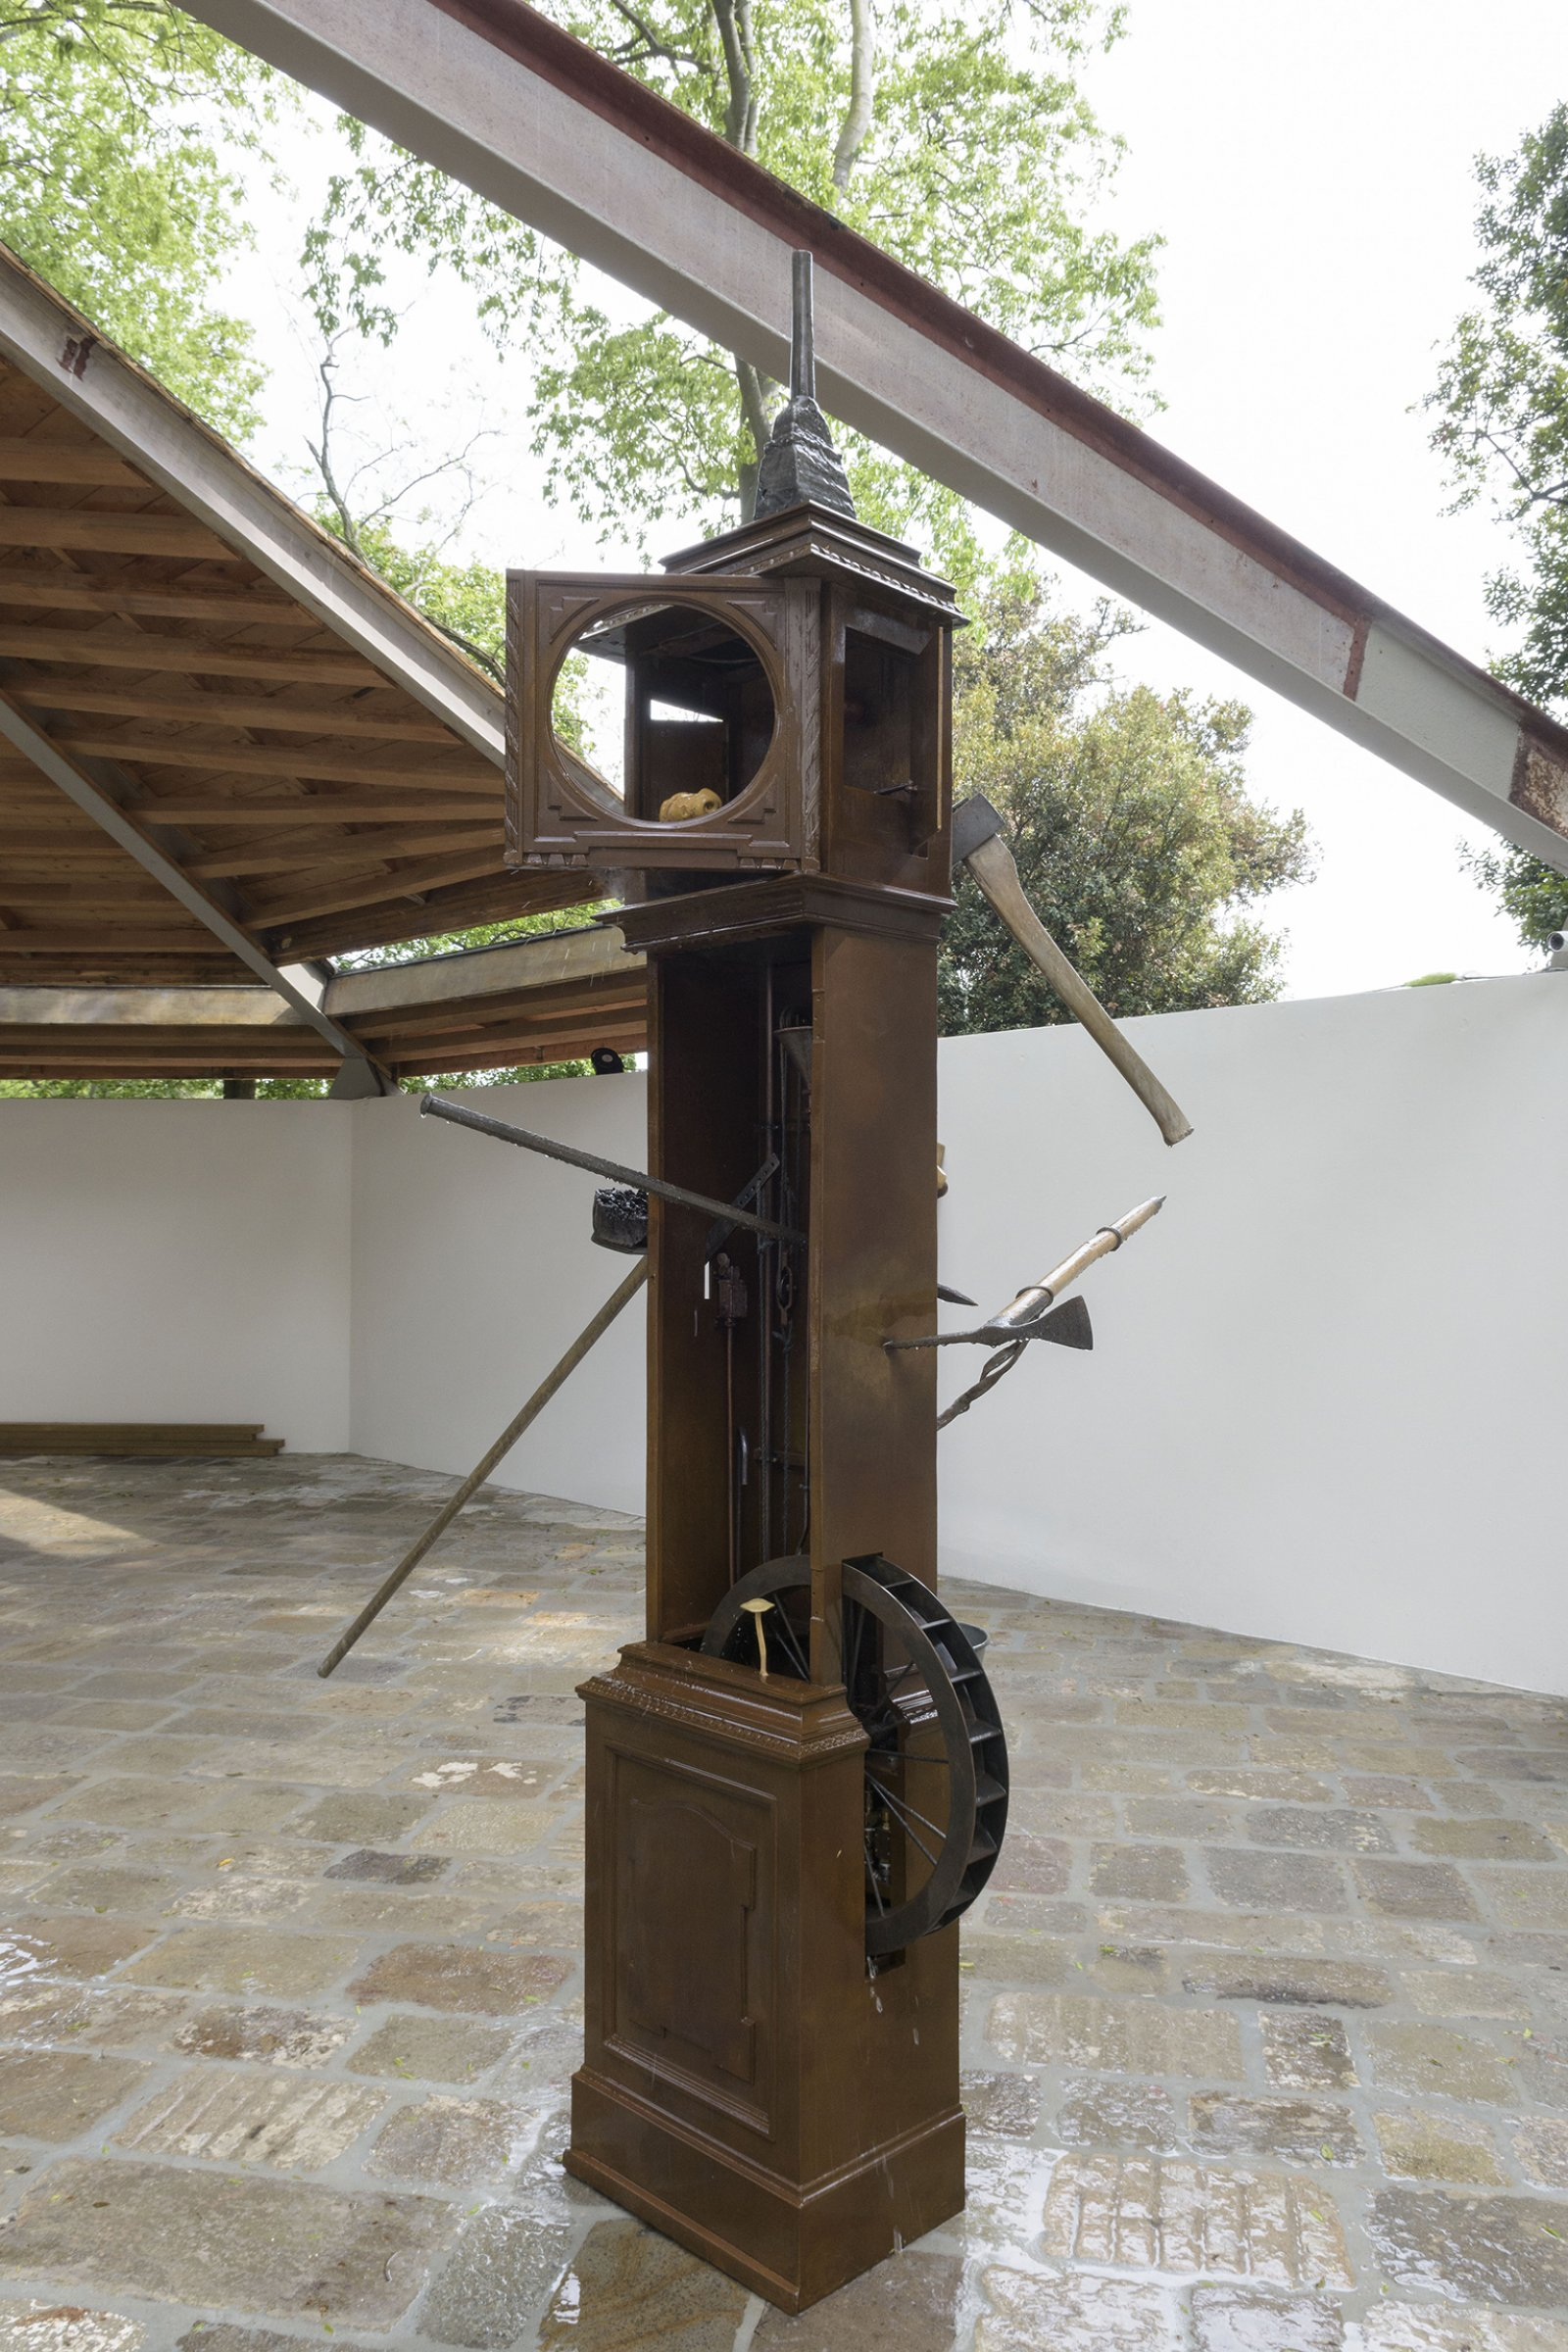 Geoffrey Farmer, Wounded Man, 2017, assembled cast bronze objects, waterworks, 118 x 20 x 20 in. (300 x 50 x 50 cm). Installation view, A way out of the mirror, Canada Pavilion, 57th Venice Biennale, Venice, Italy